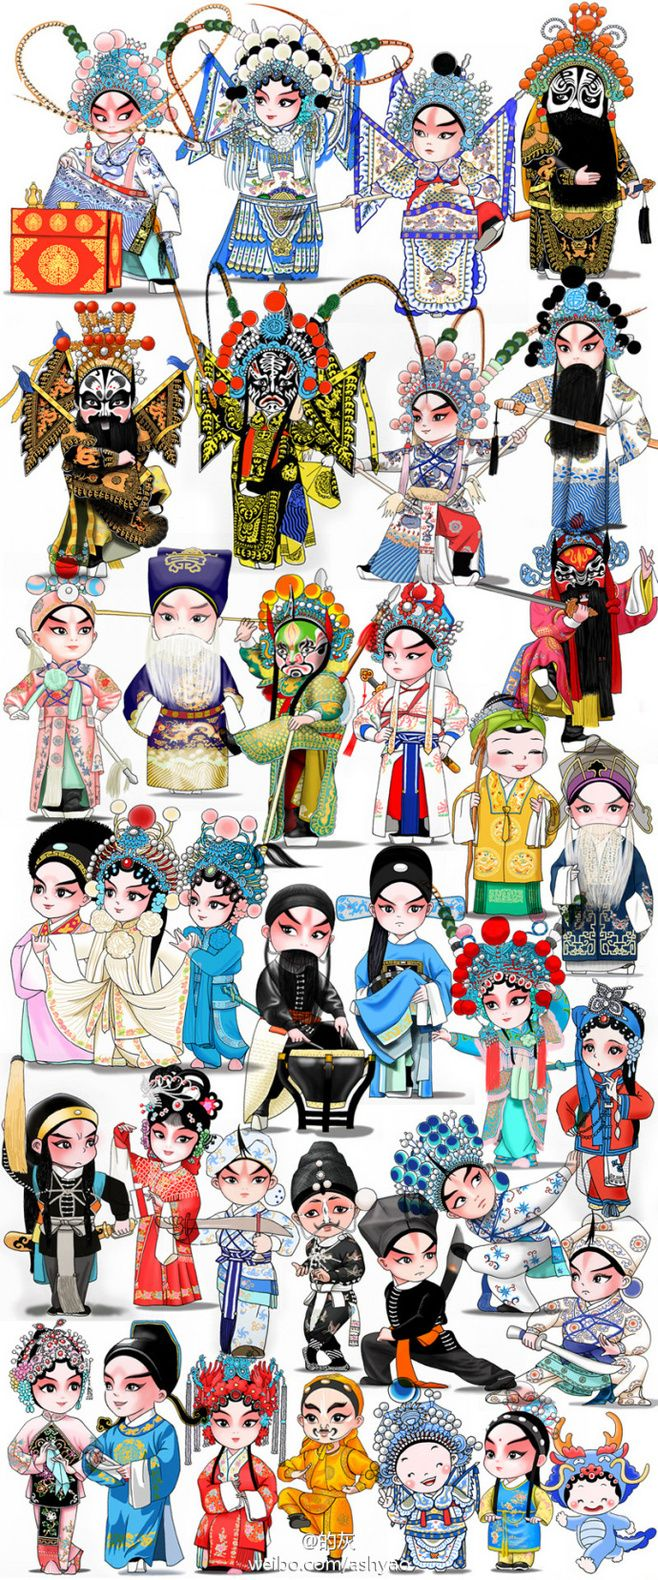 Beijing opera,peking opera, chinese traditional culture, fantastic art, Cute cartoon characters.